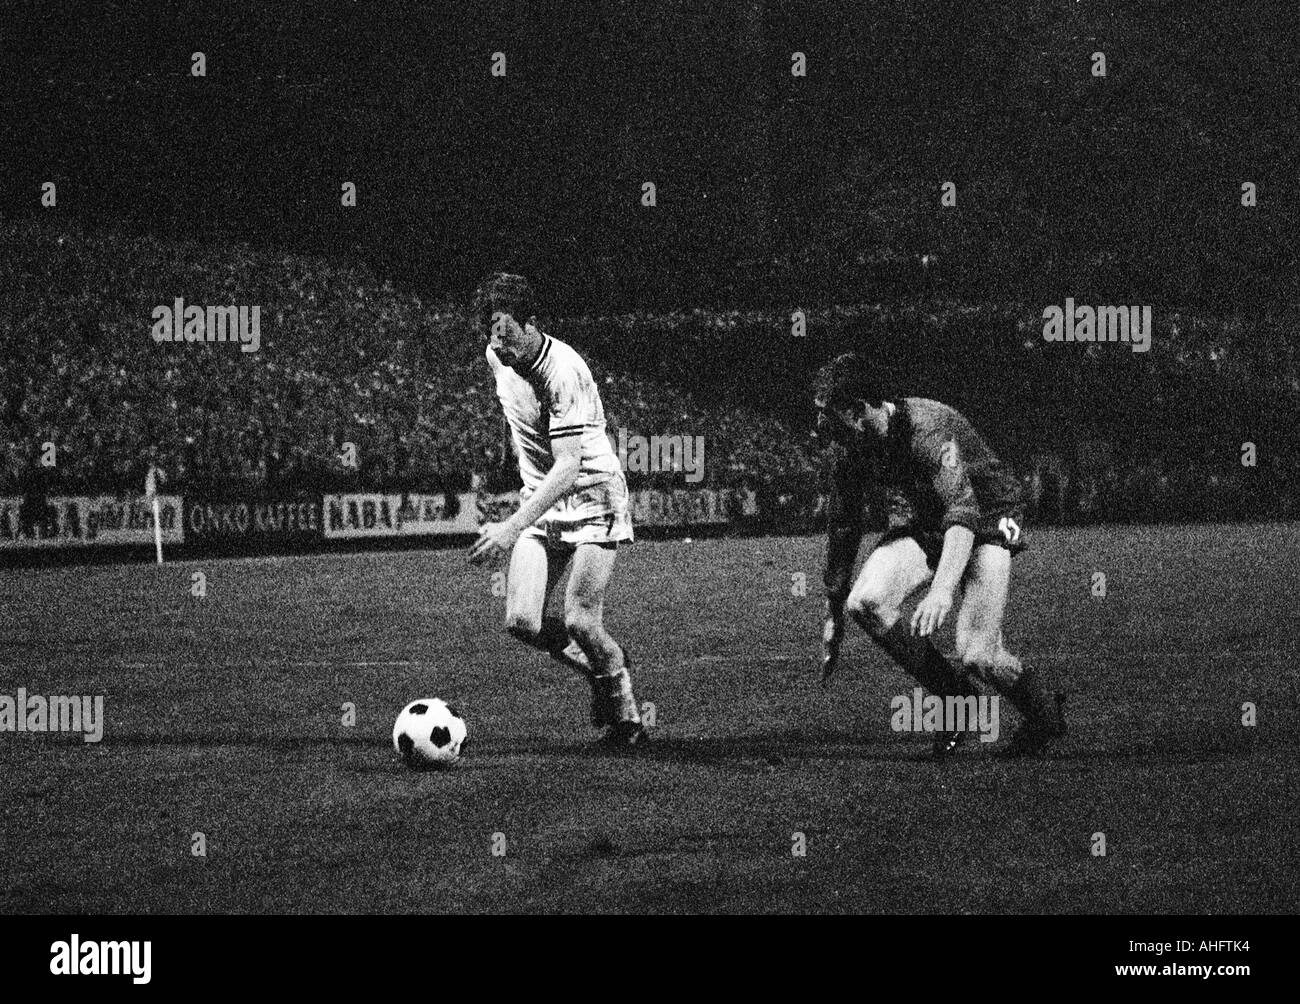 football, Bundesliga, 1968/1969, Boekelberg Stadium, Borussia Moenchengladbach versus Kickers Offenbach 4:1, scene of the match, duel between Herbert Wimmer (Gladbach) left and Dieter Fern (Offenbach) - Stock Image